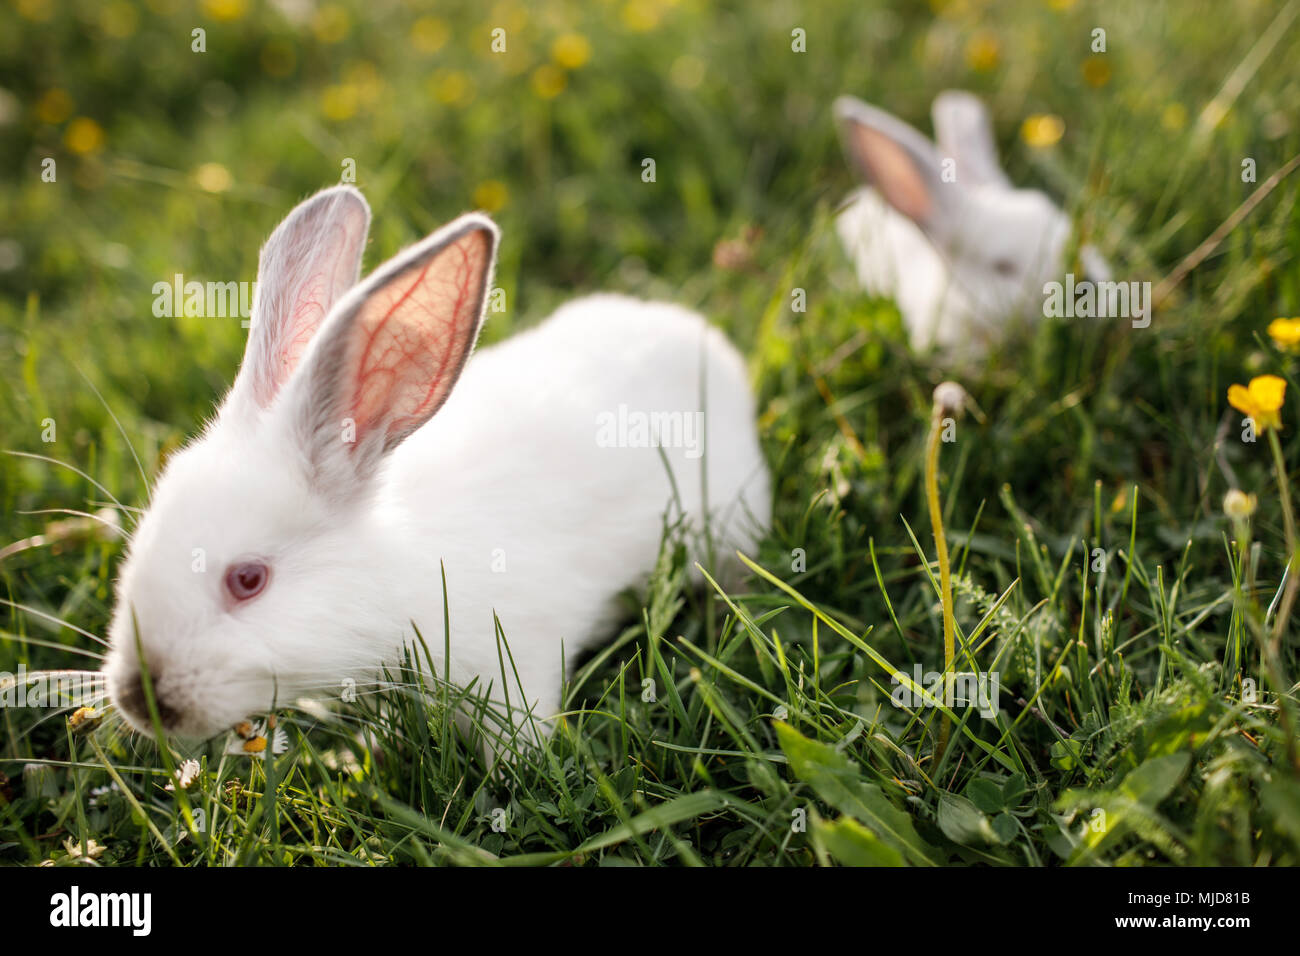 Baby white rabbit in spring green grass background - Stock Image